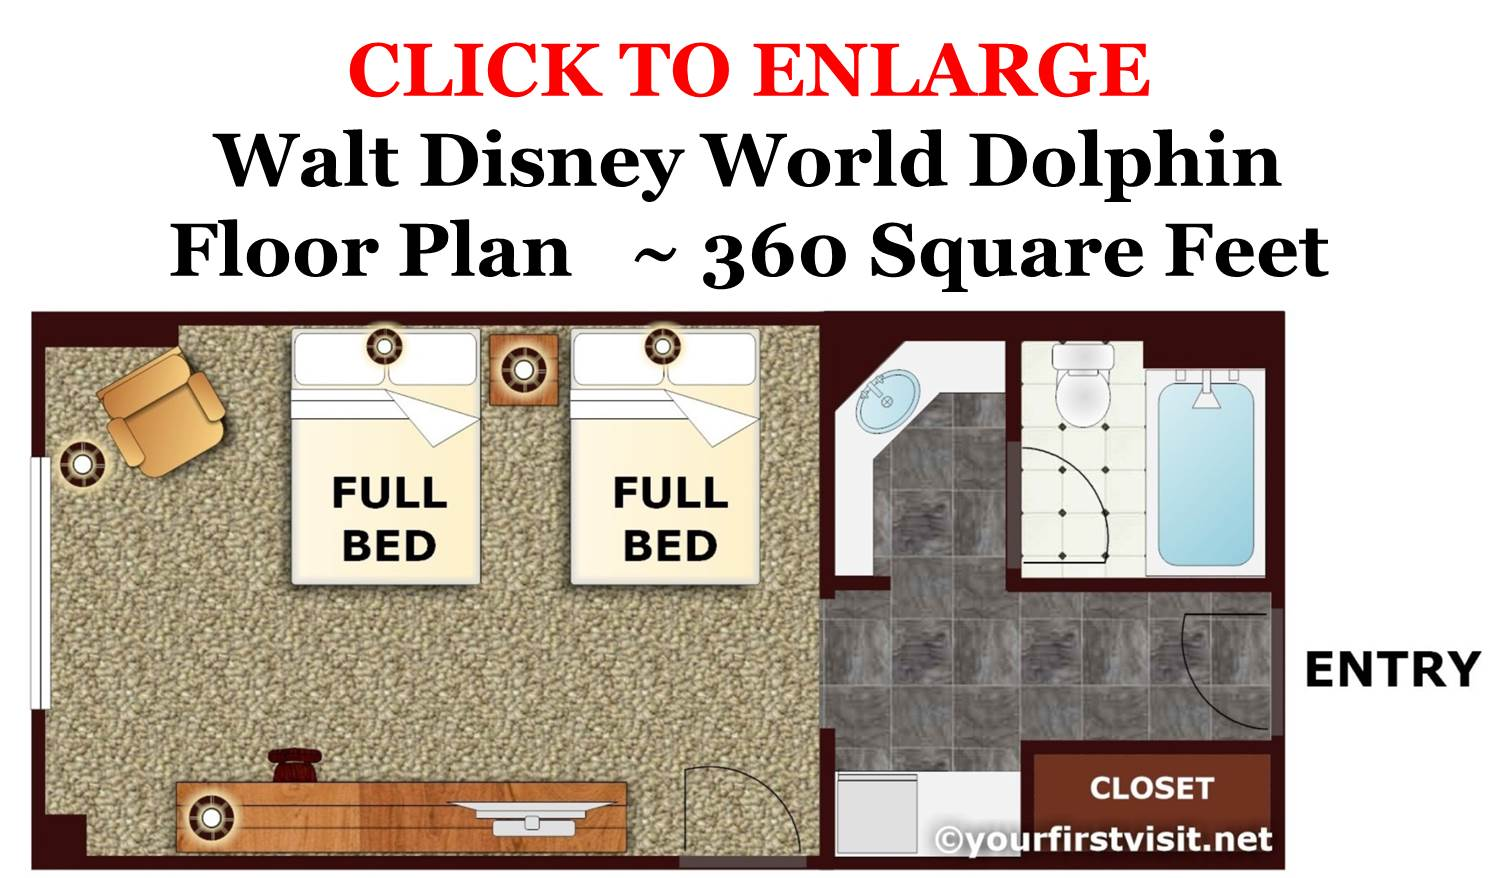 Floor Plan Disney World Dolphin Standard Full Bed Room from yourfirstvisit.net